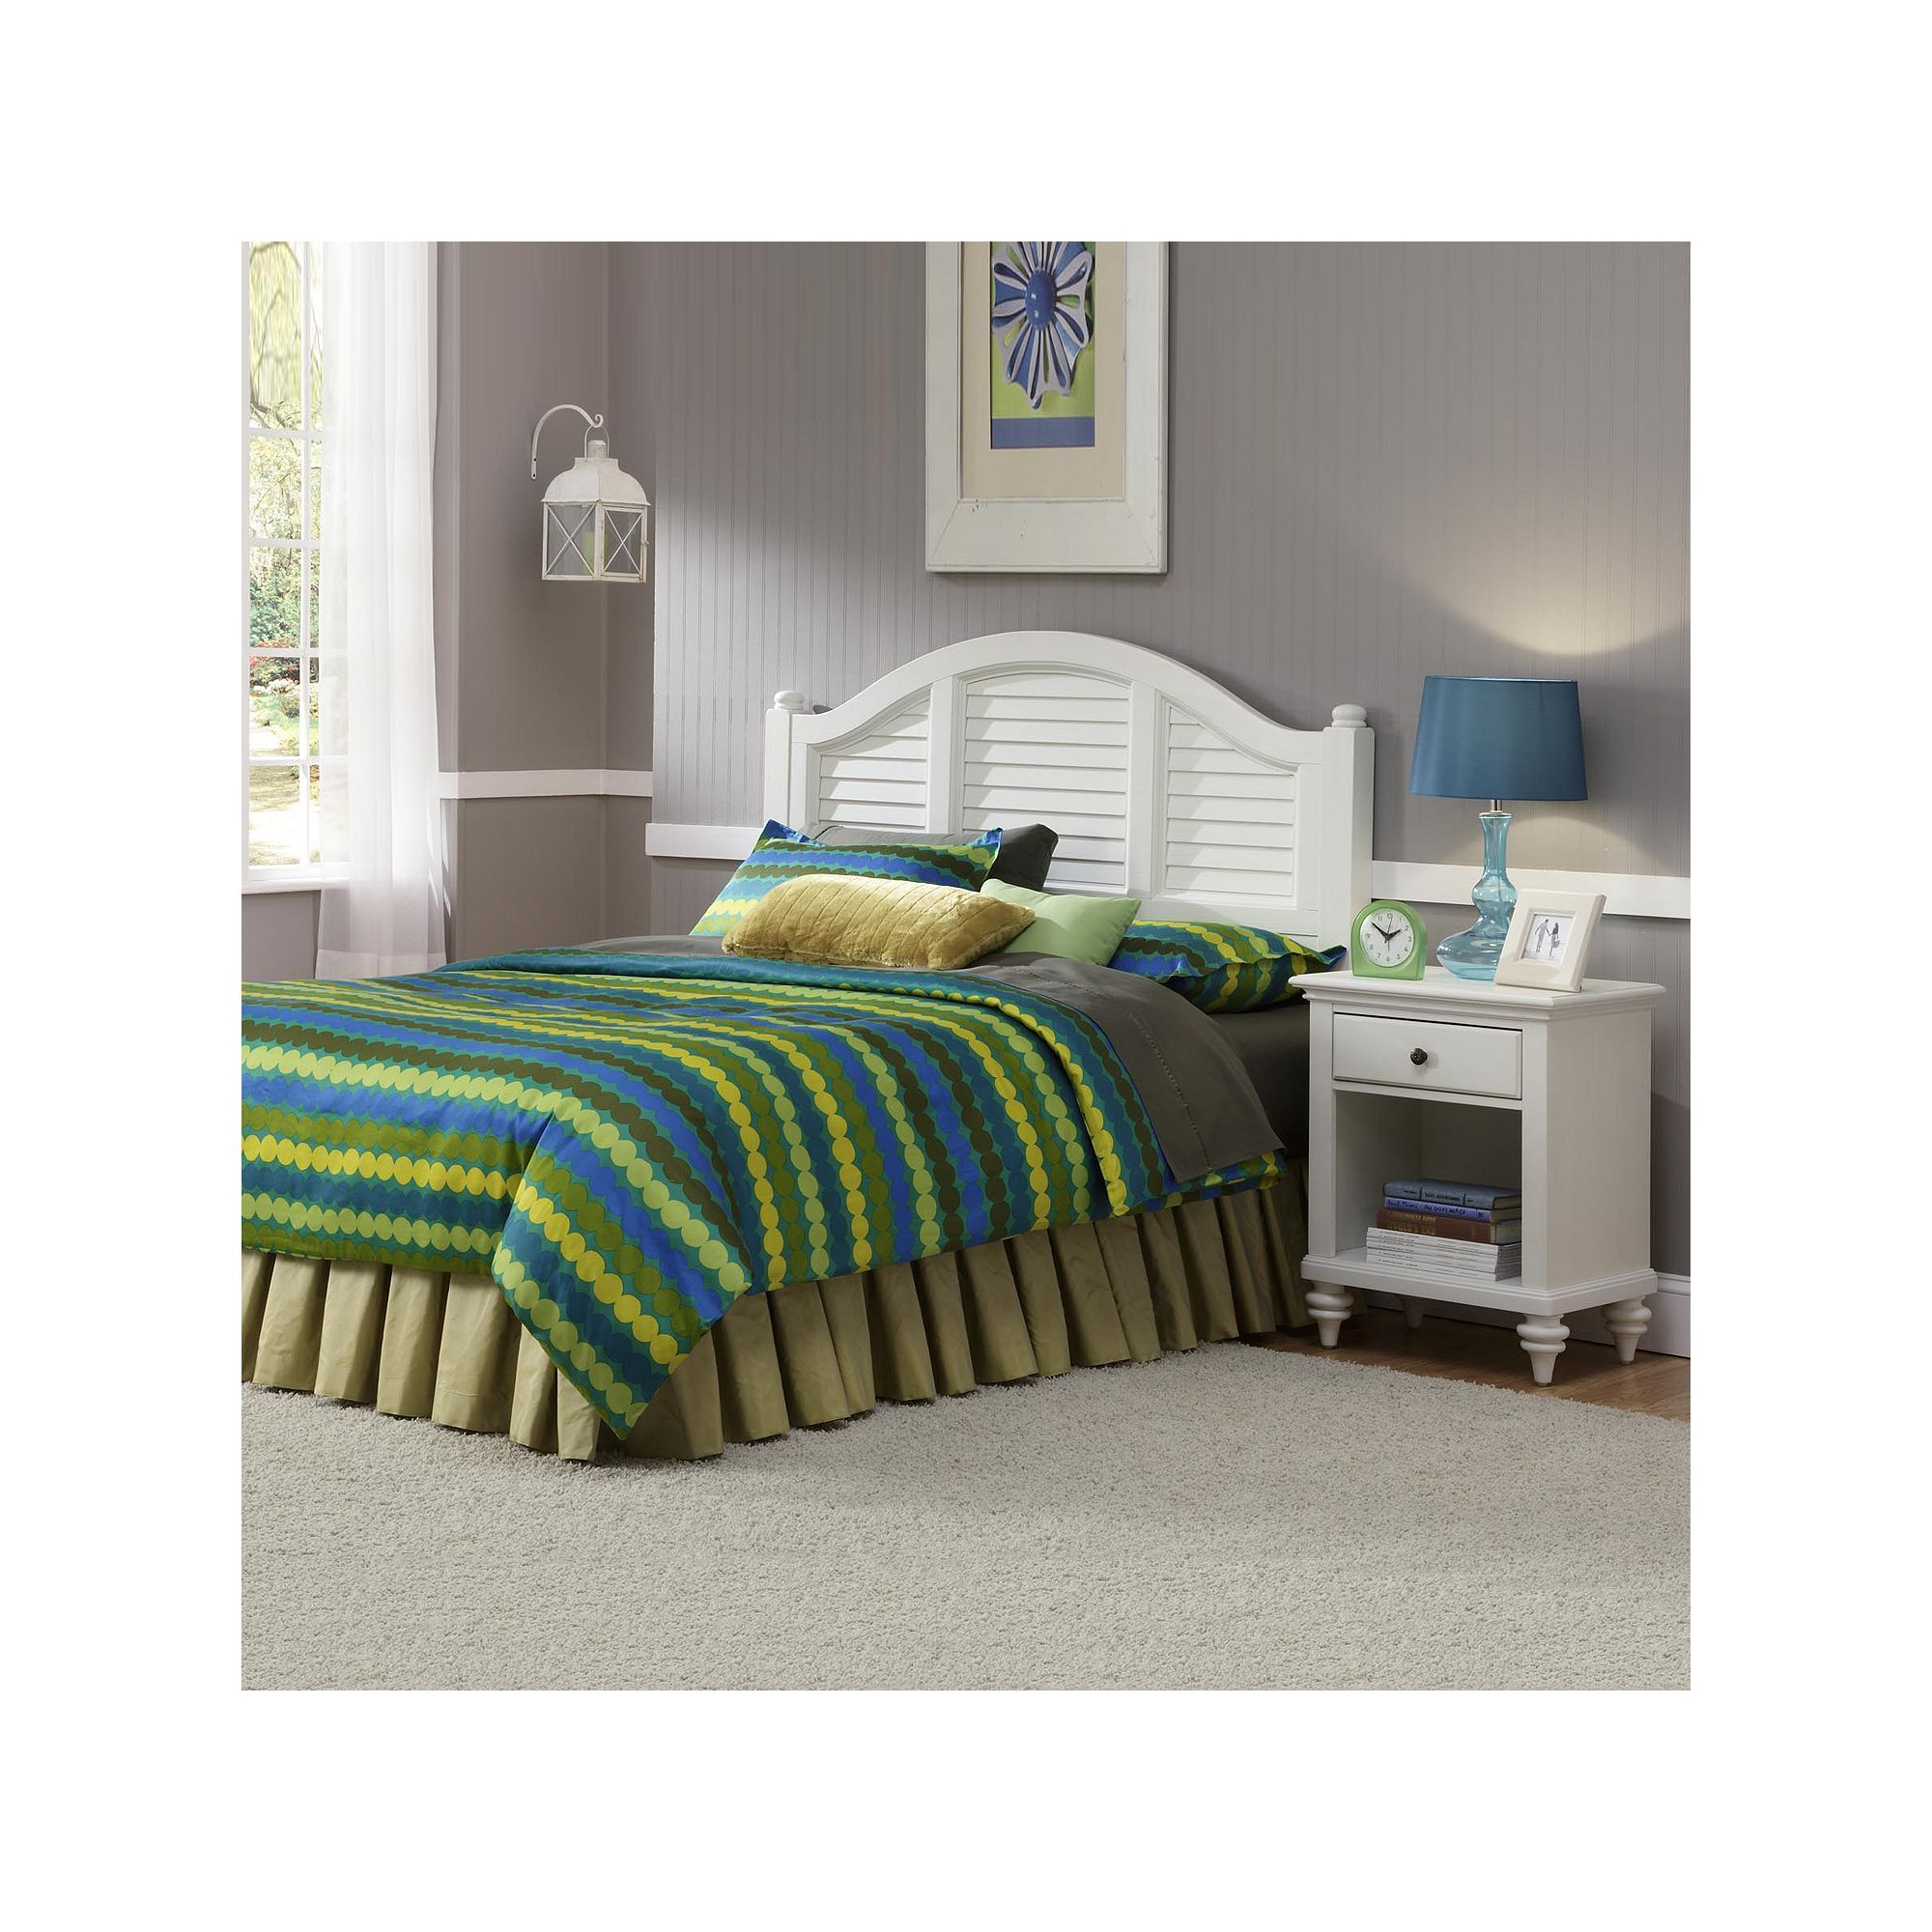 Bermuda queen headboard and nightstand white nightstands and products